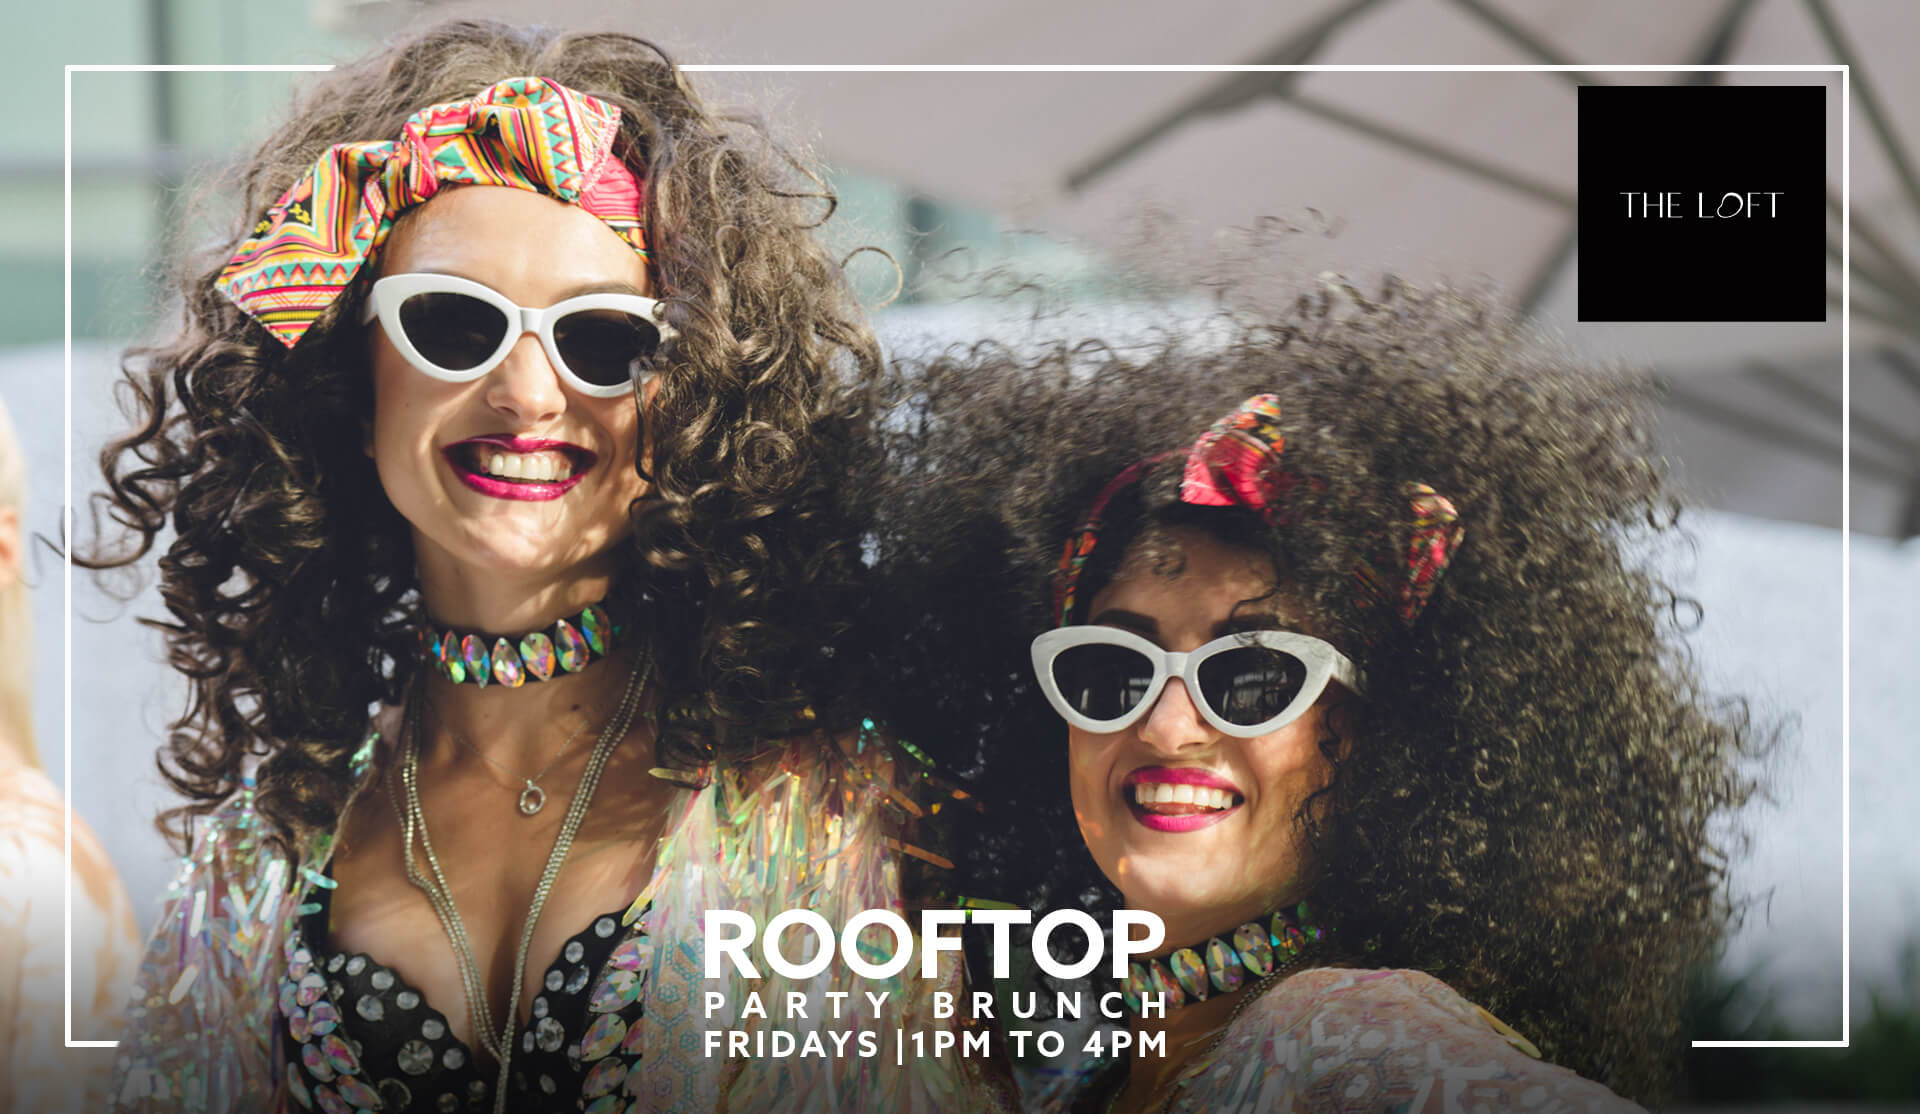 Rooftop Party Brunch - The Loft at Dubai Opera